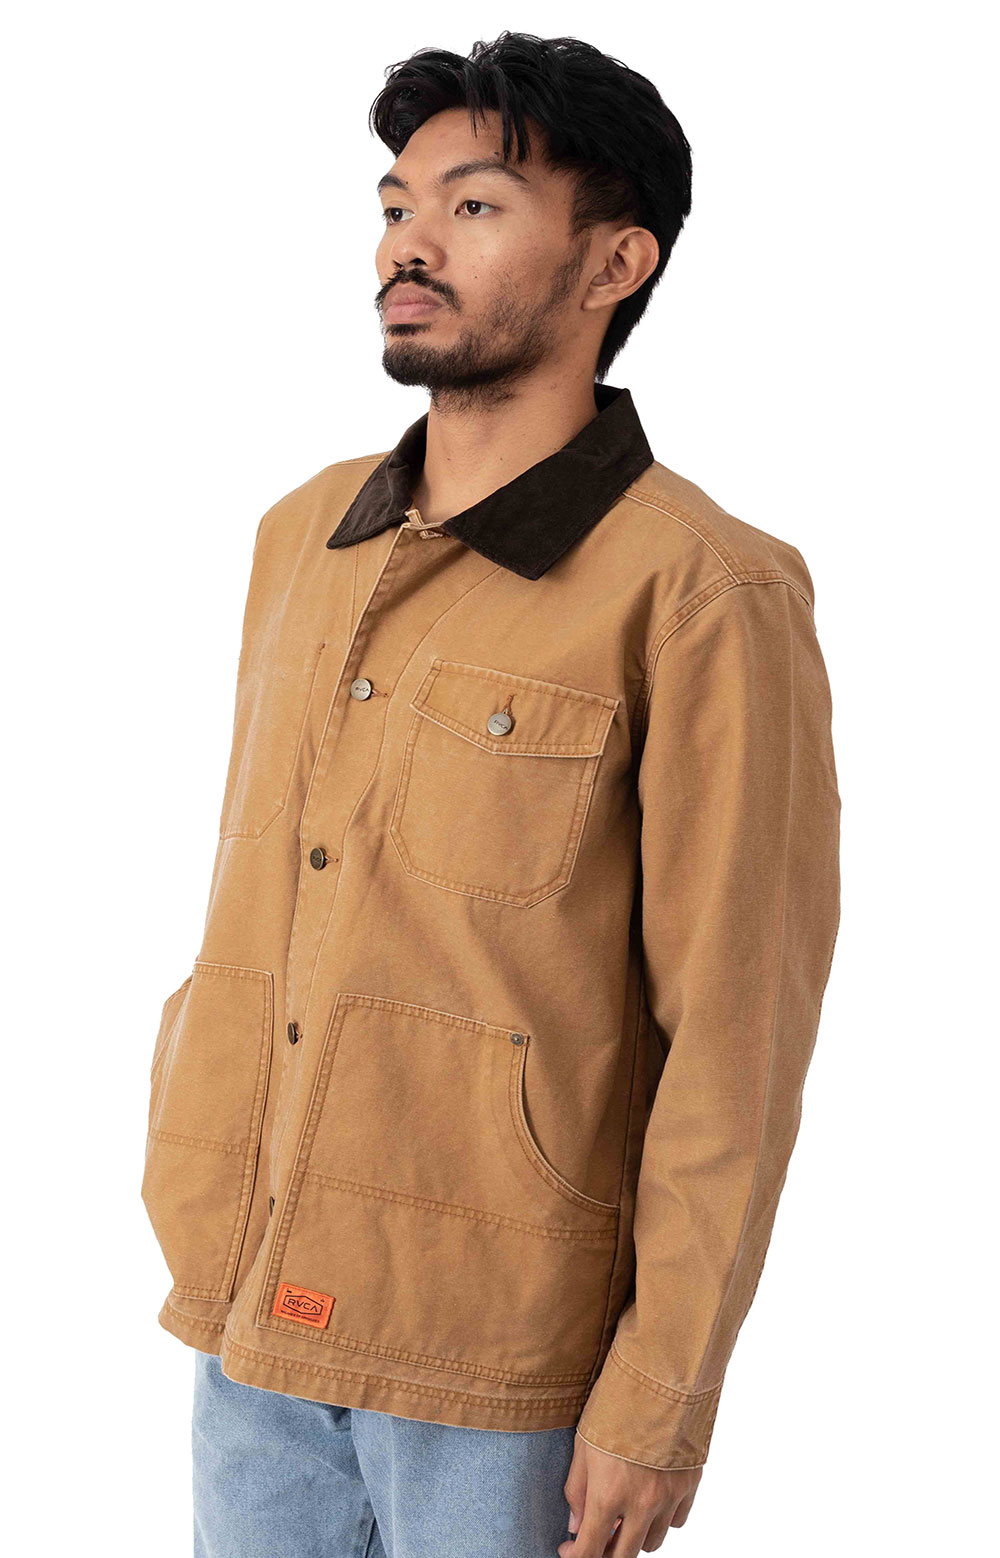 Chainmail Chore Jacket - Camel  2